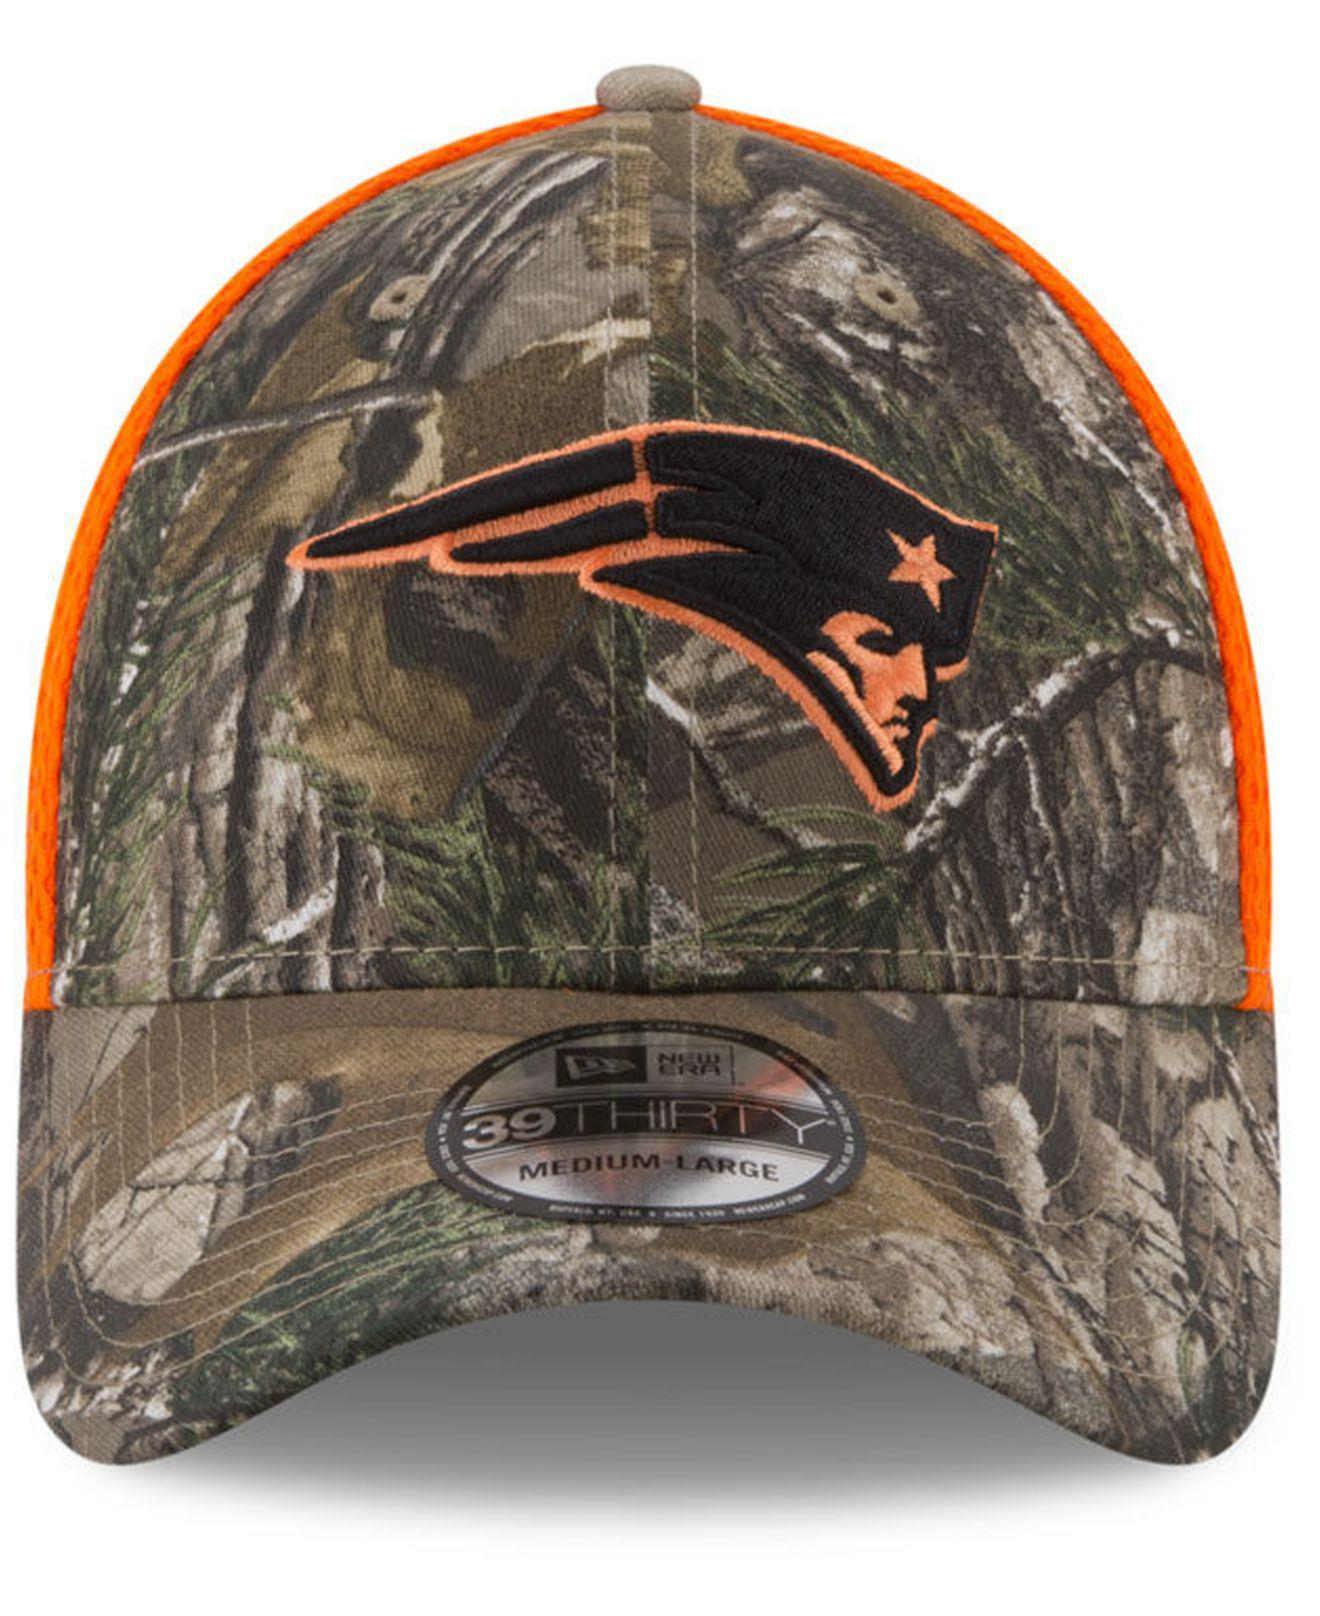 e805afcc7 ... hat heather gray ab0a0 bee1d; best price lyst ktz new england patriots  realtree hunter neo 39thirty cap for men 9519d 03ee8